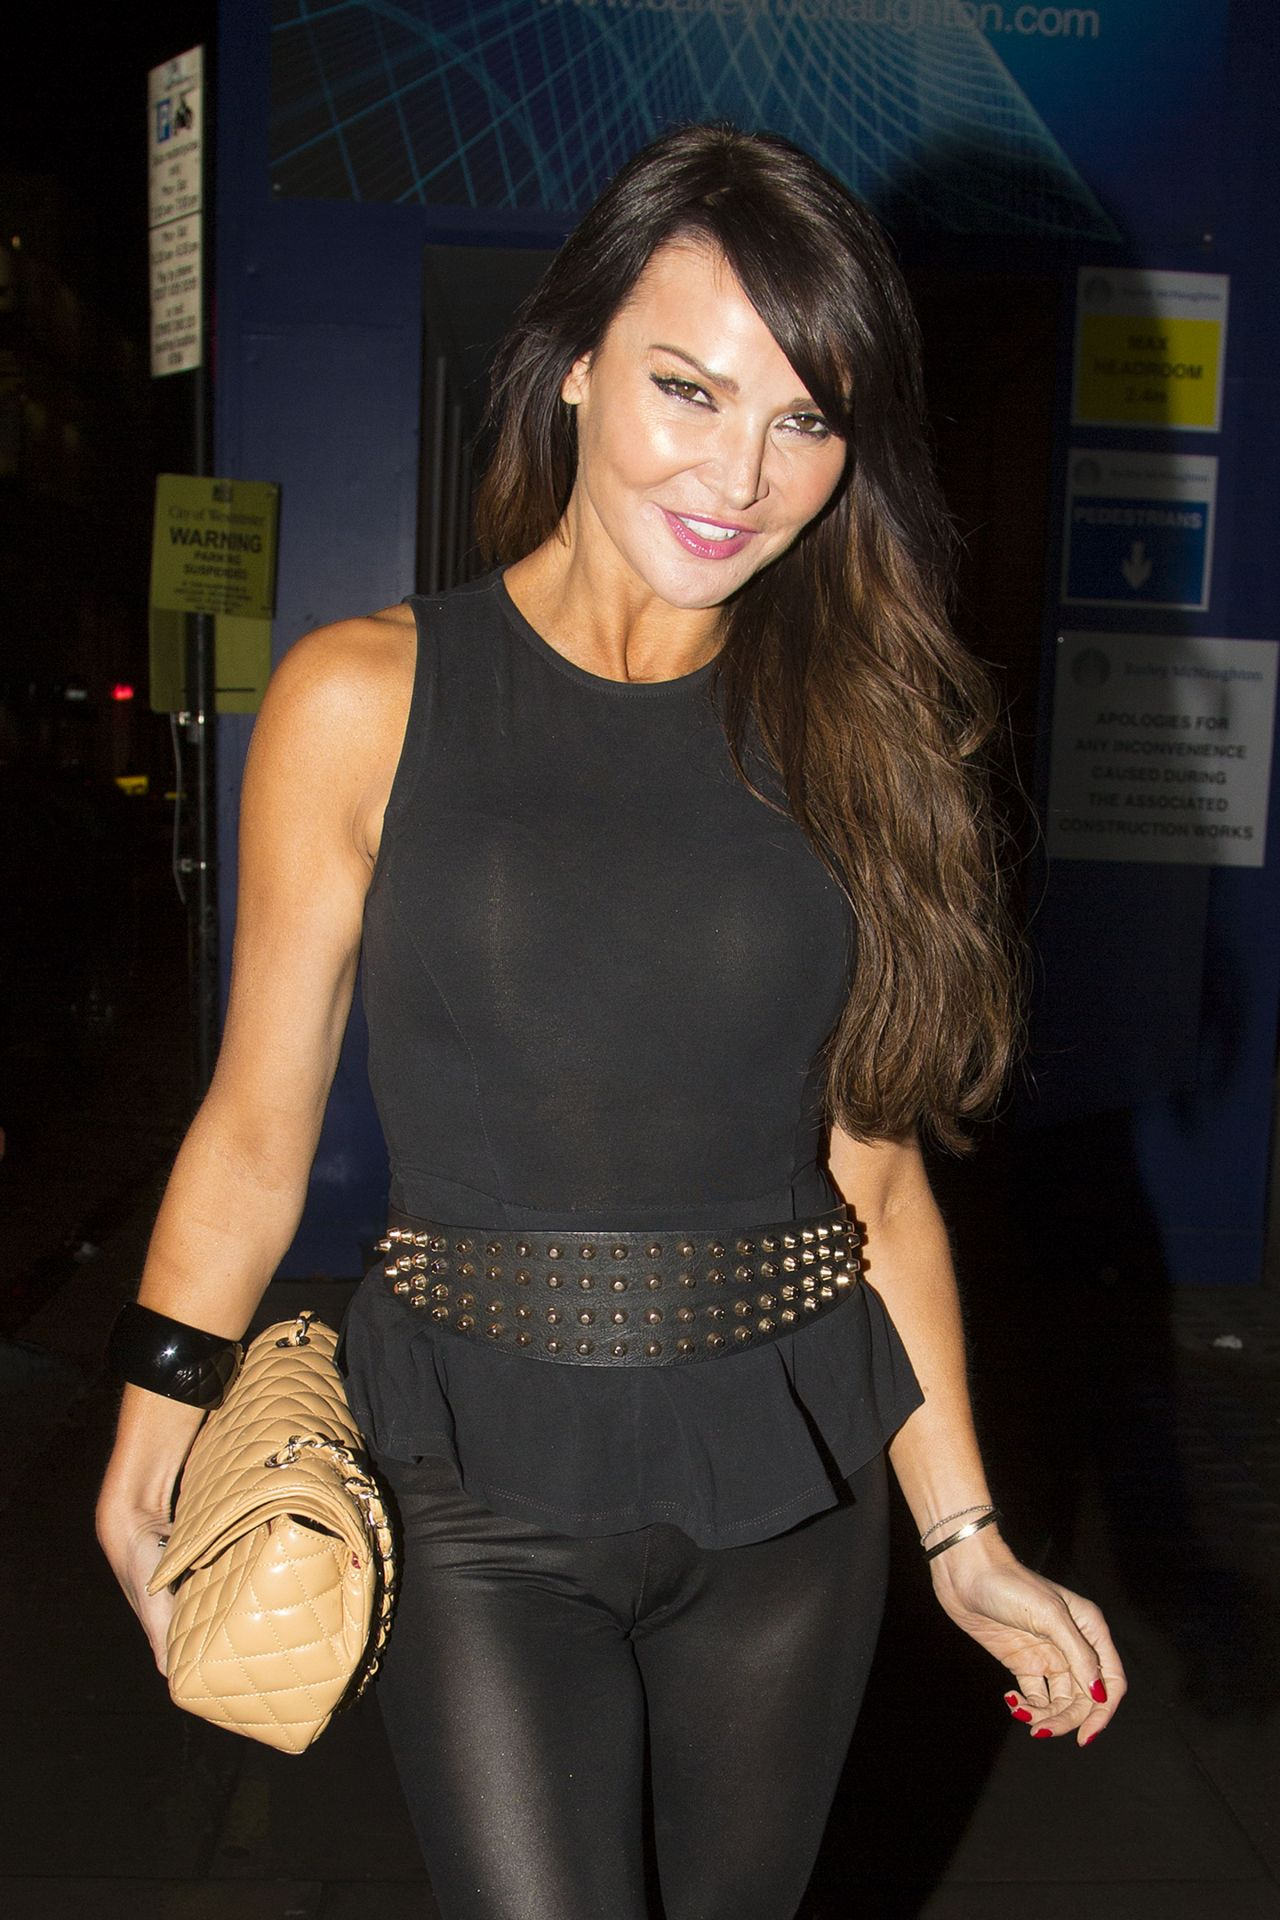 Lizzie Cundy In Tight Spandex - Sketch Halloween Party London-4816